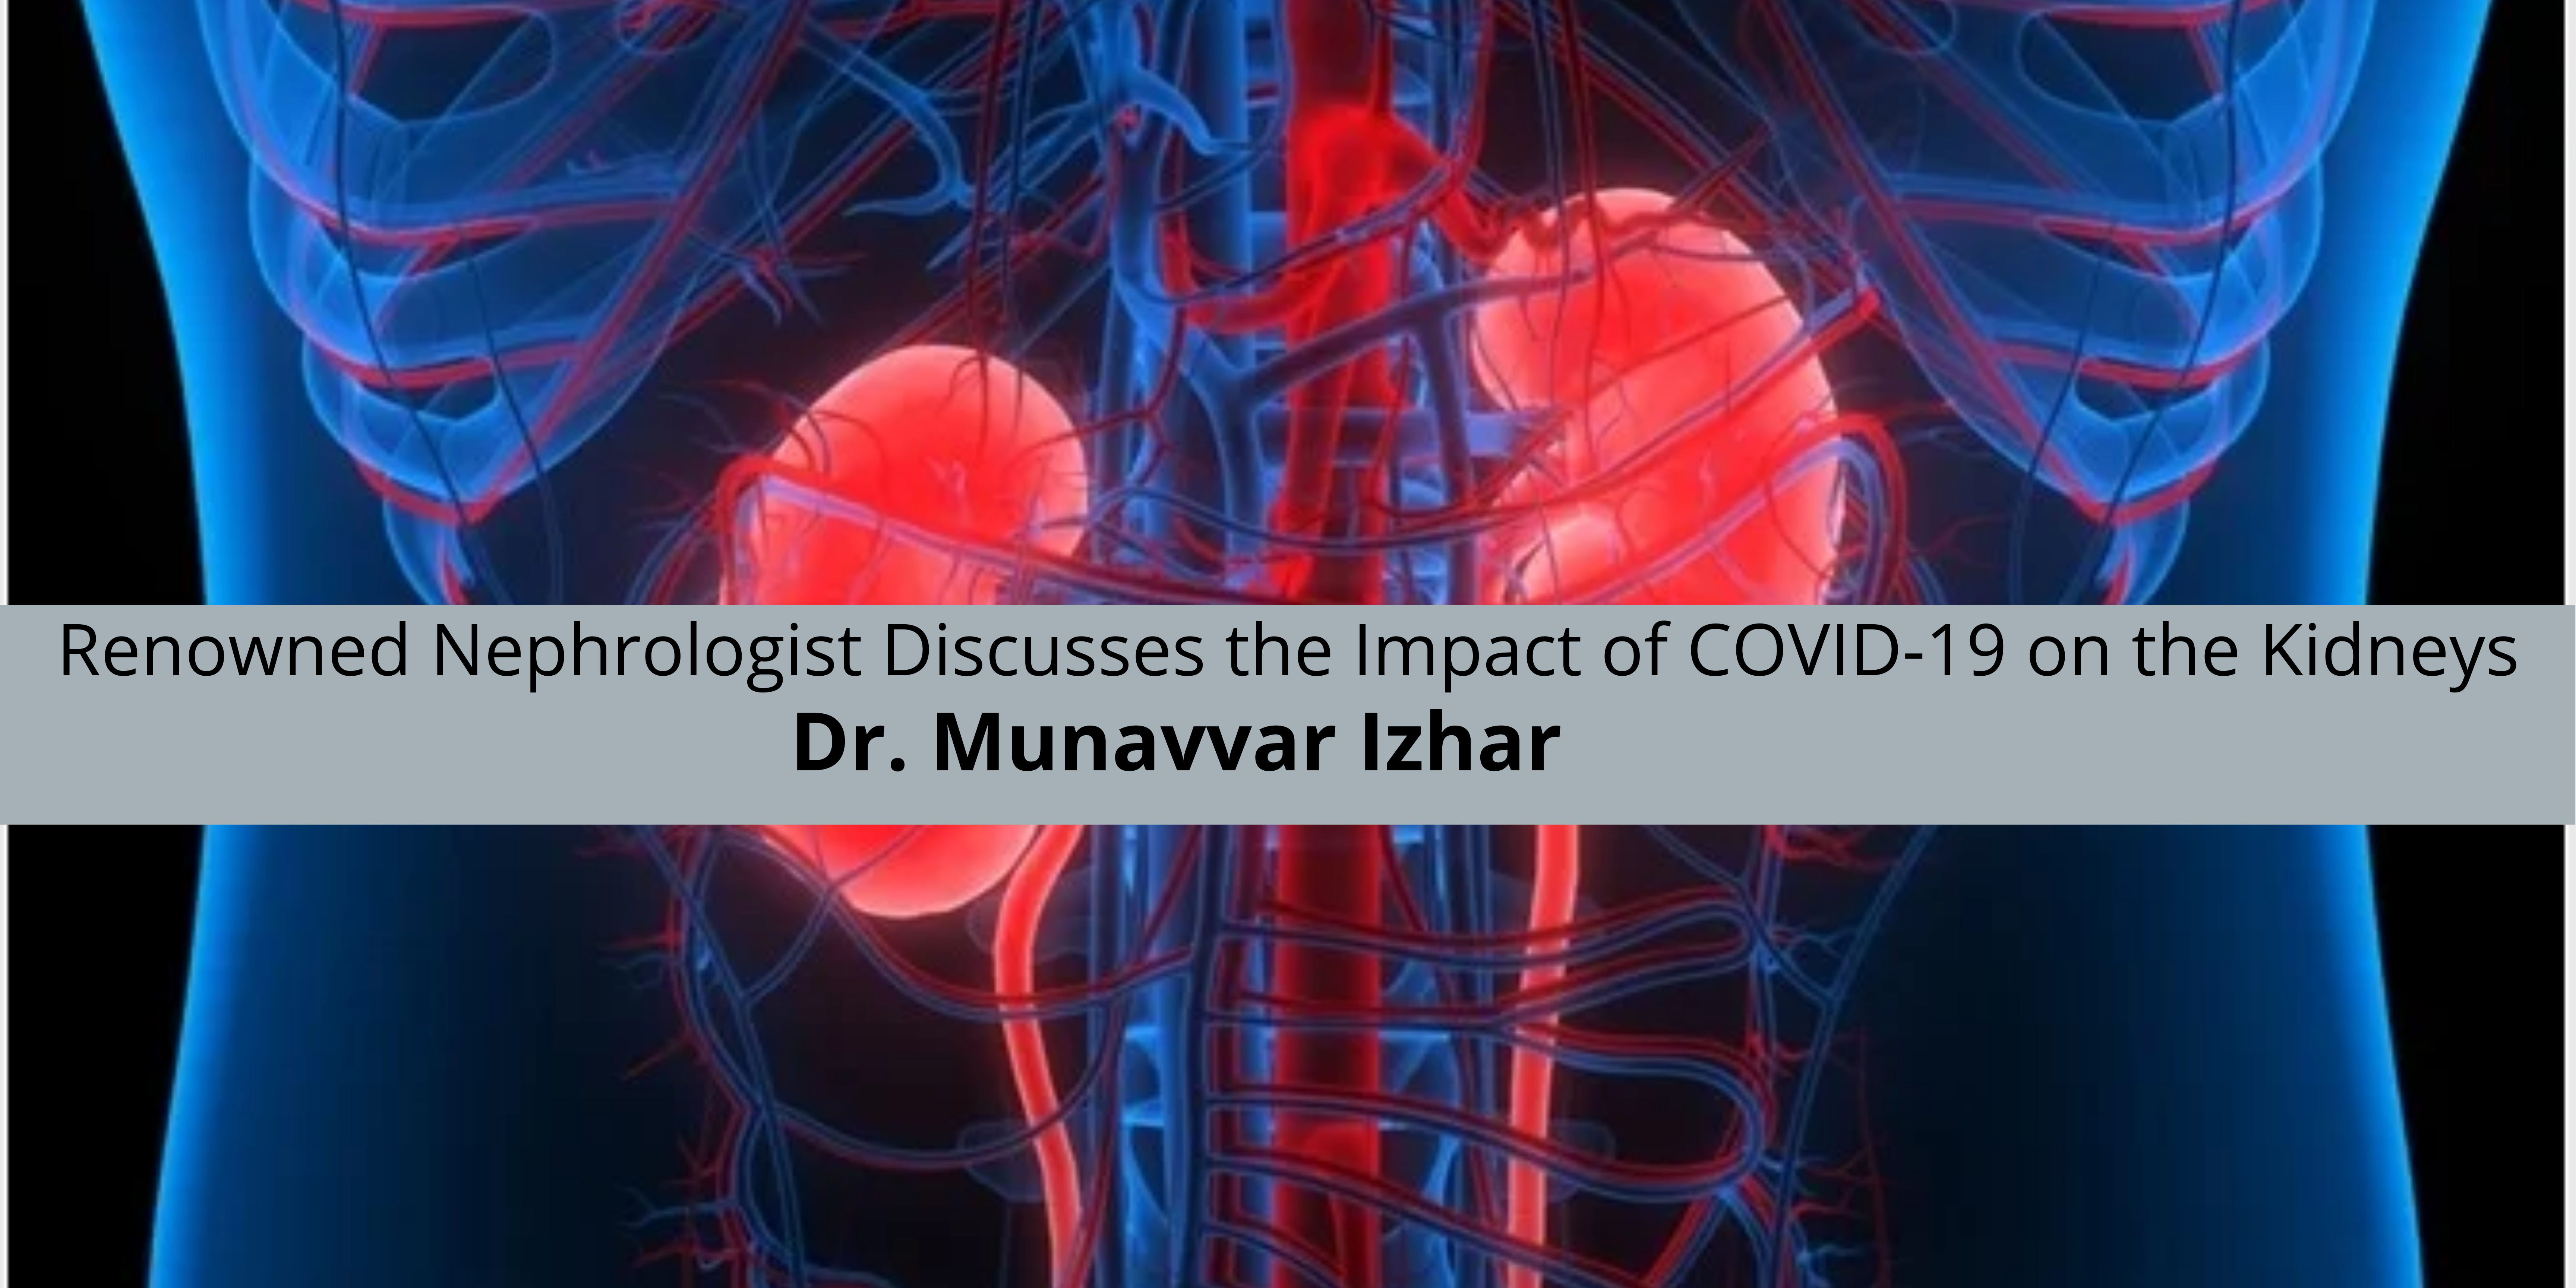 Renowned Nephrologist Dr. Munavvar Izhar Discusses the Impact of COVID-19 on the Kidneys